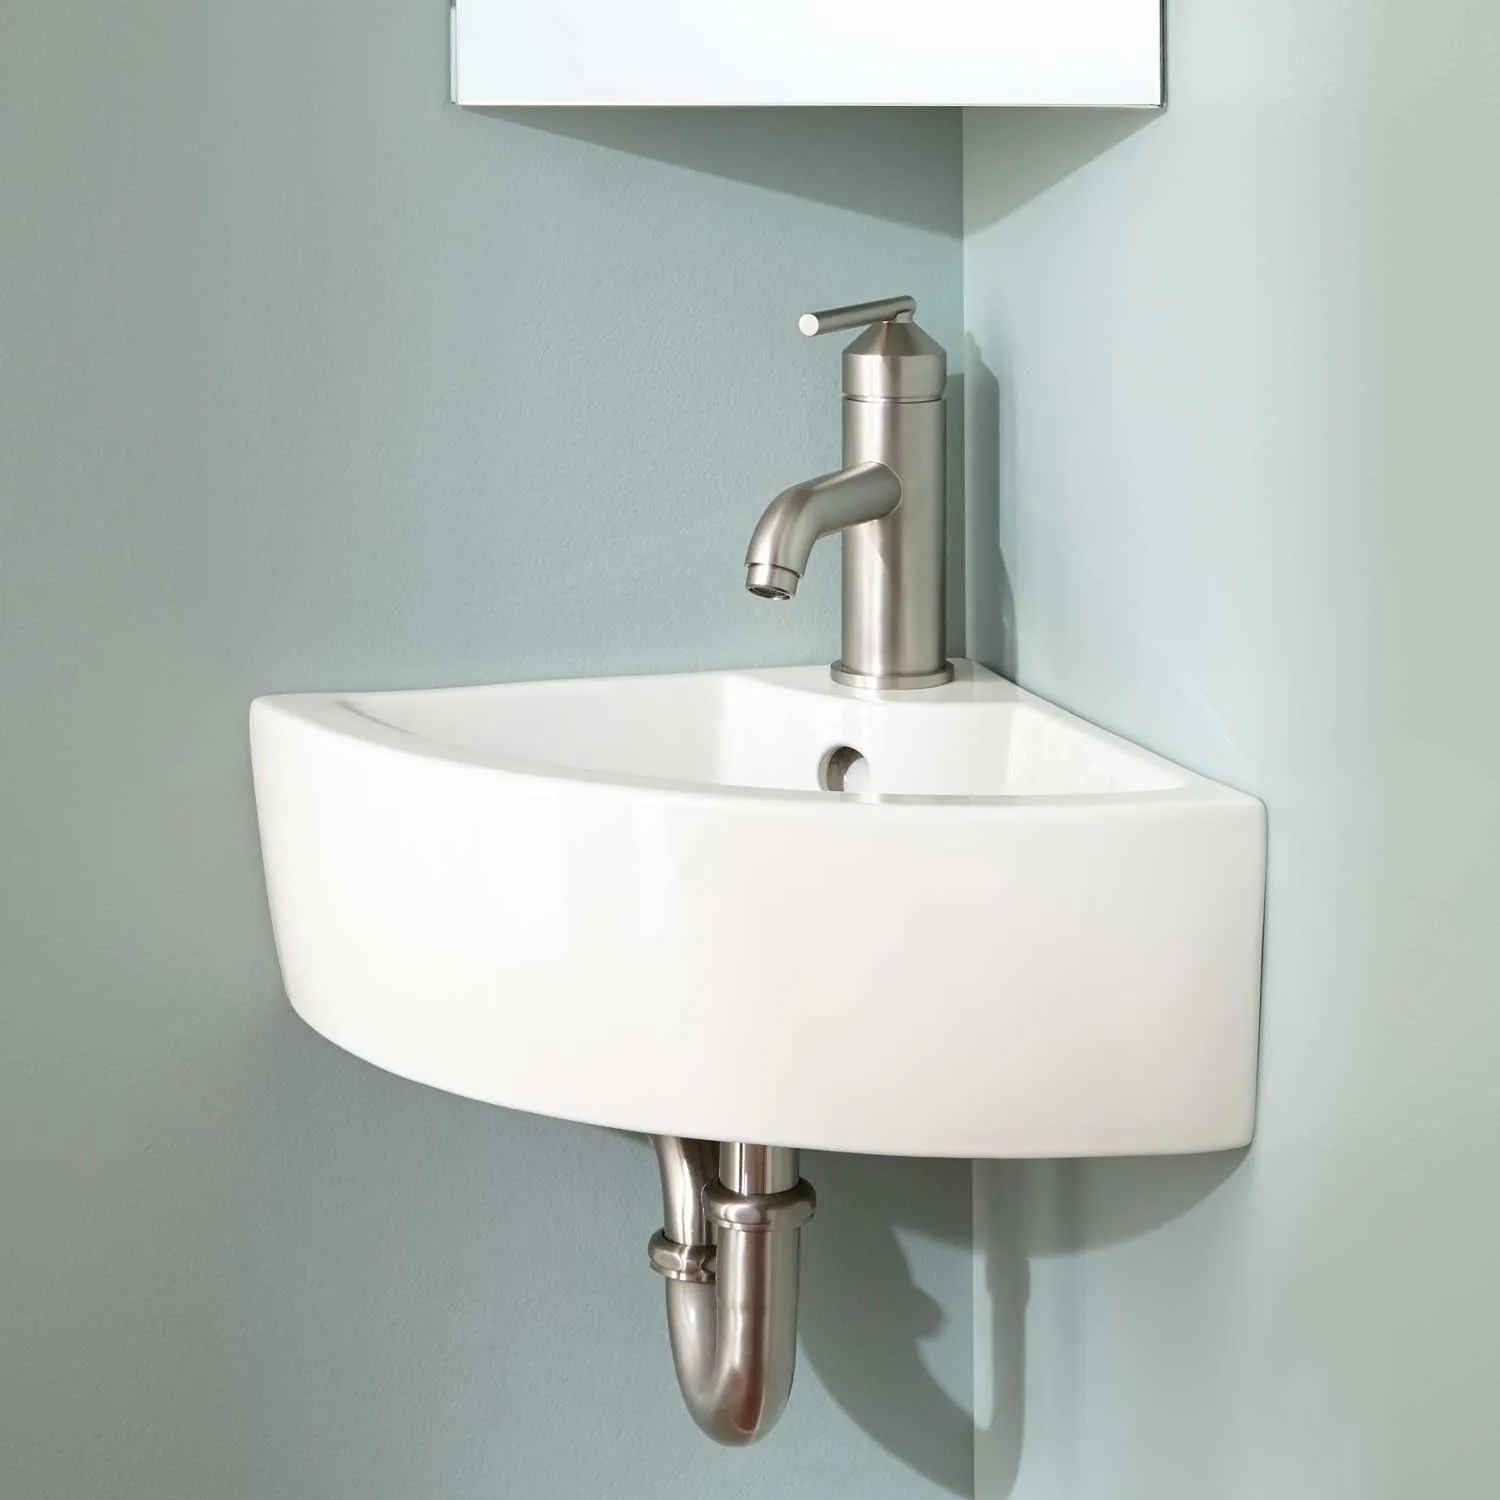 Signature Hardware Amelda Wall Mount Corner Bathroom Sink